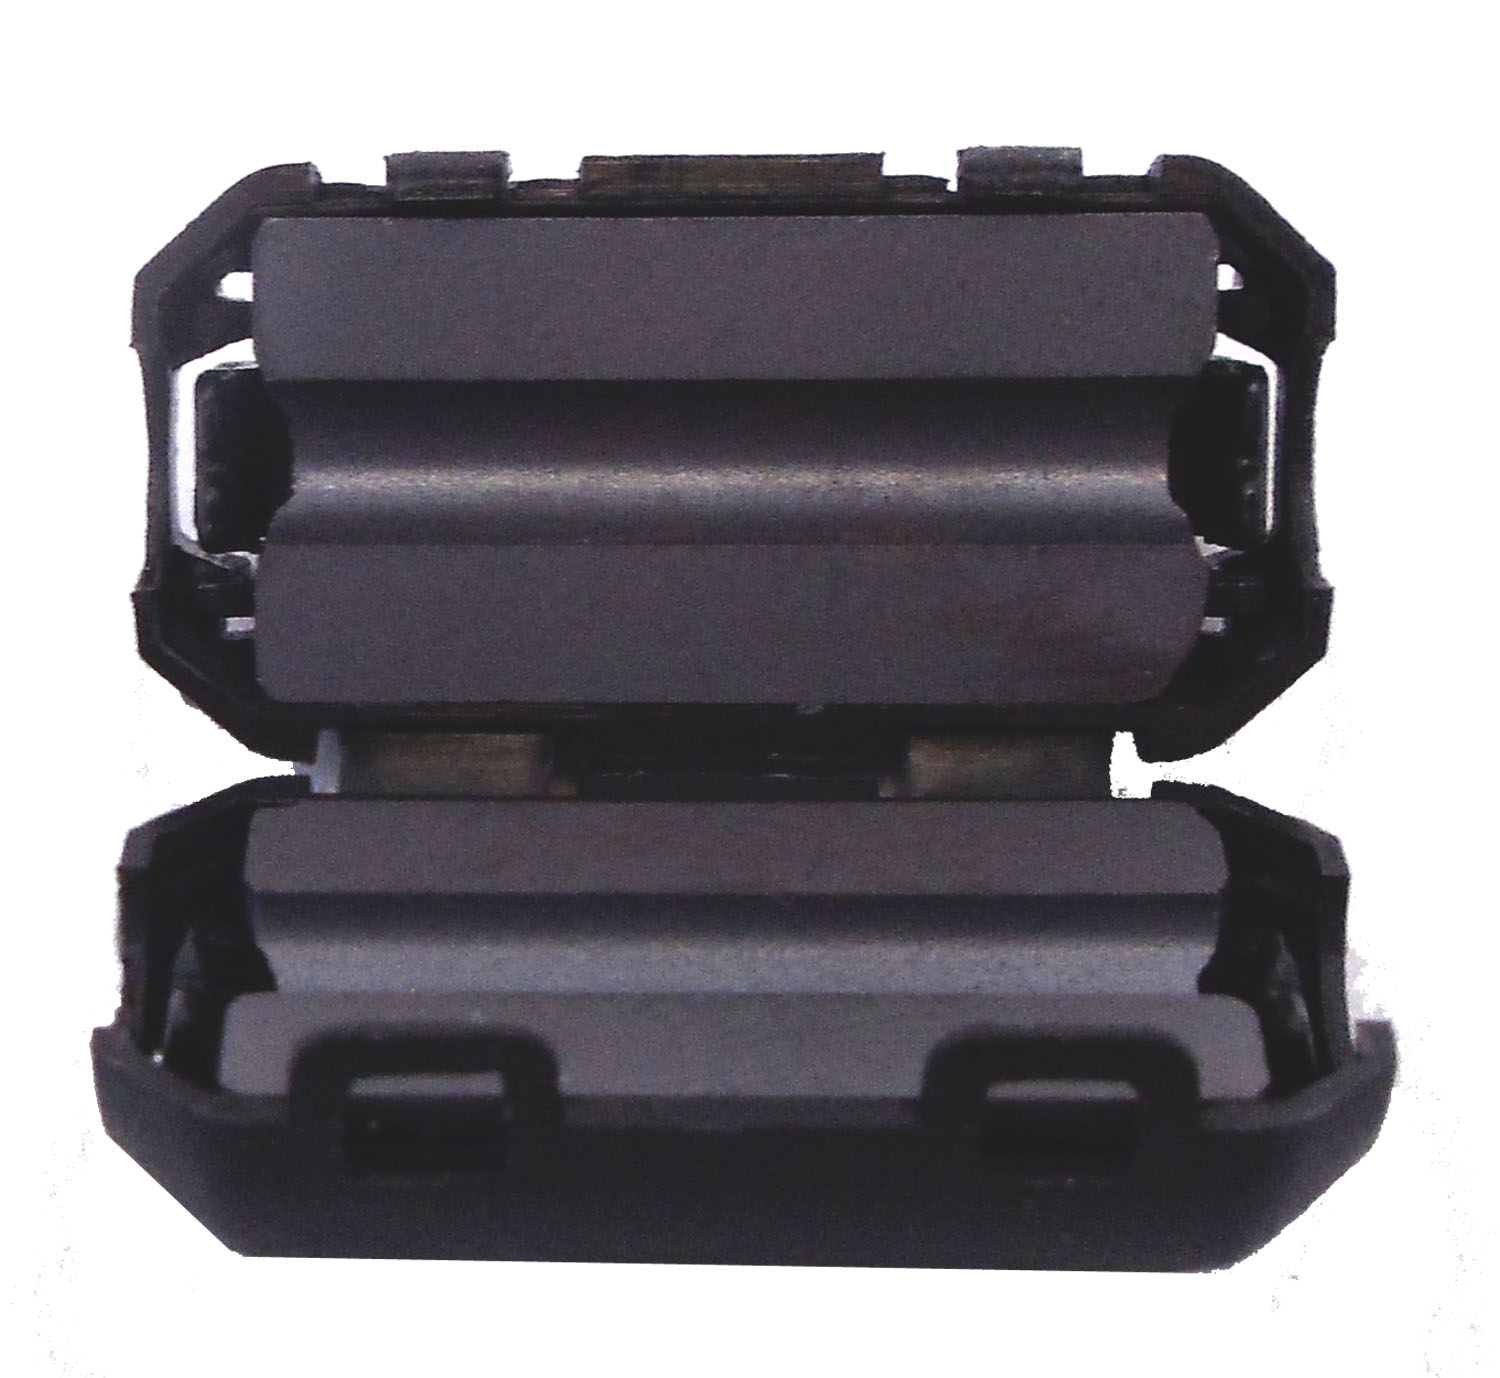 3.5MM SNAP FERRITE CORE NOISE SUPPRESOR FOR UP TO 10 GAUGE WIRE